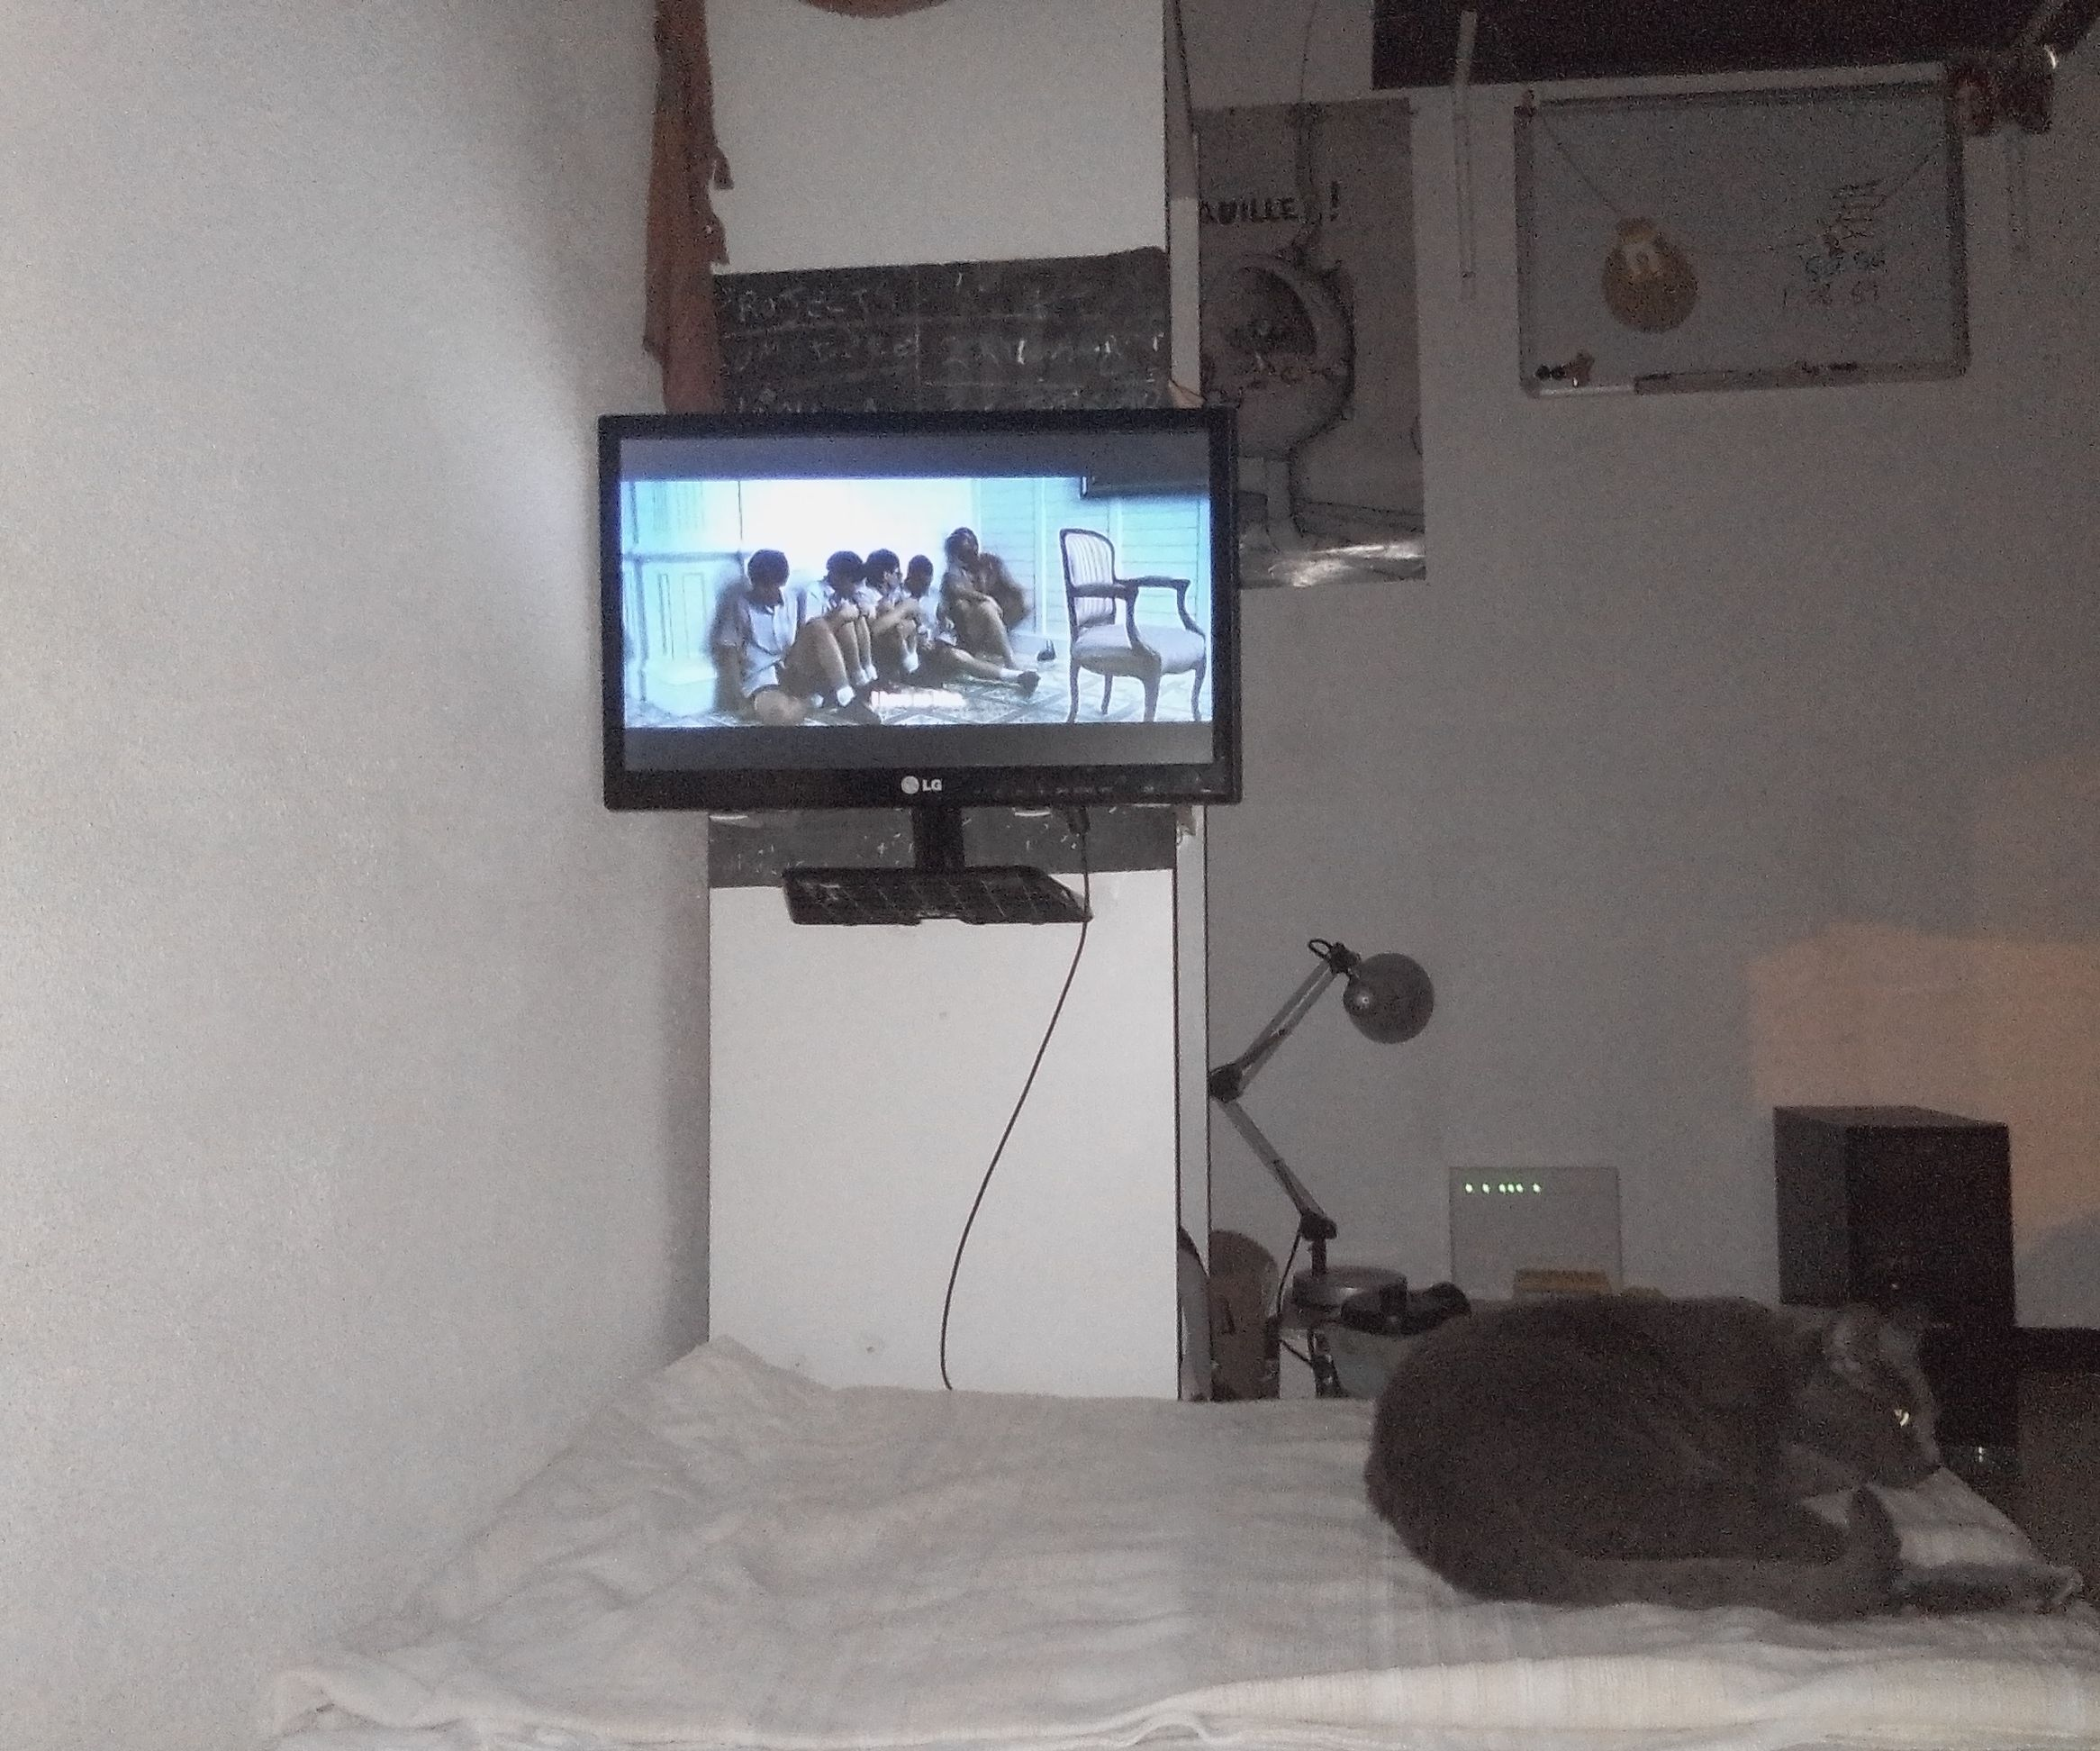 TV Monitor Mounted on Wood in My Room.